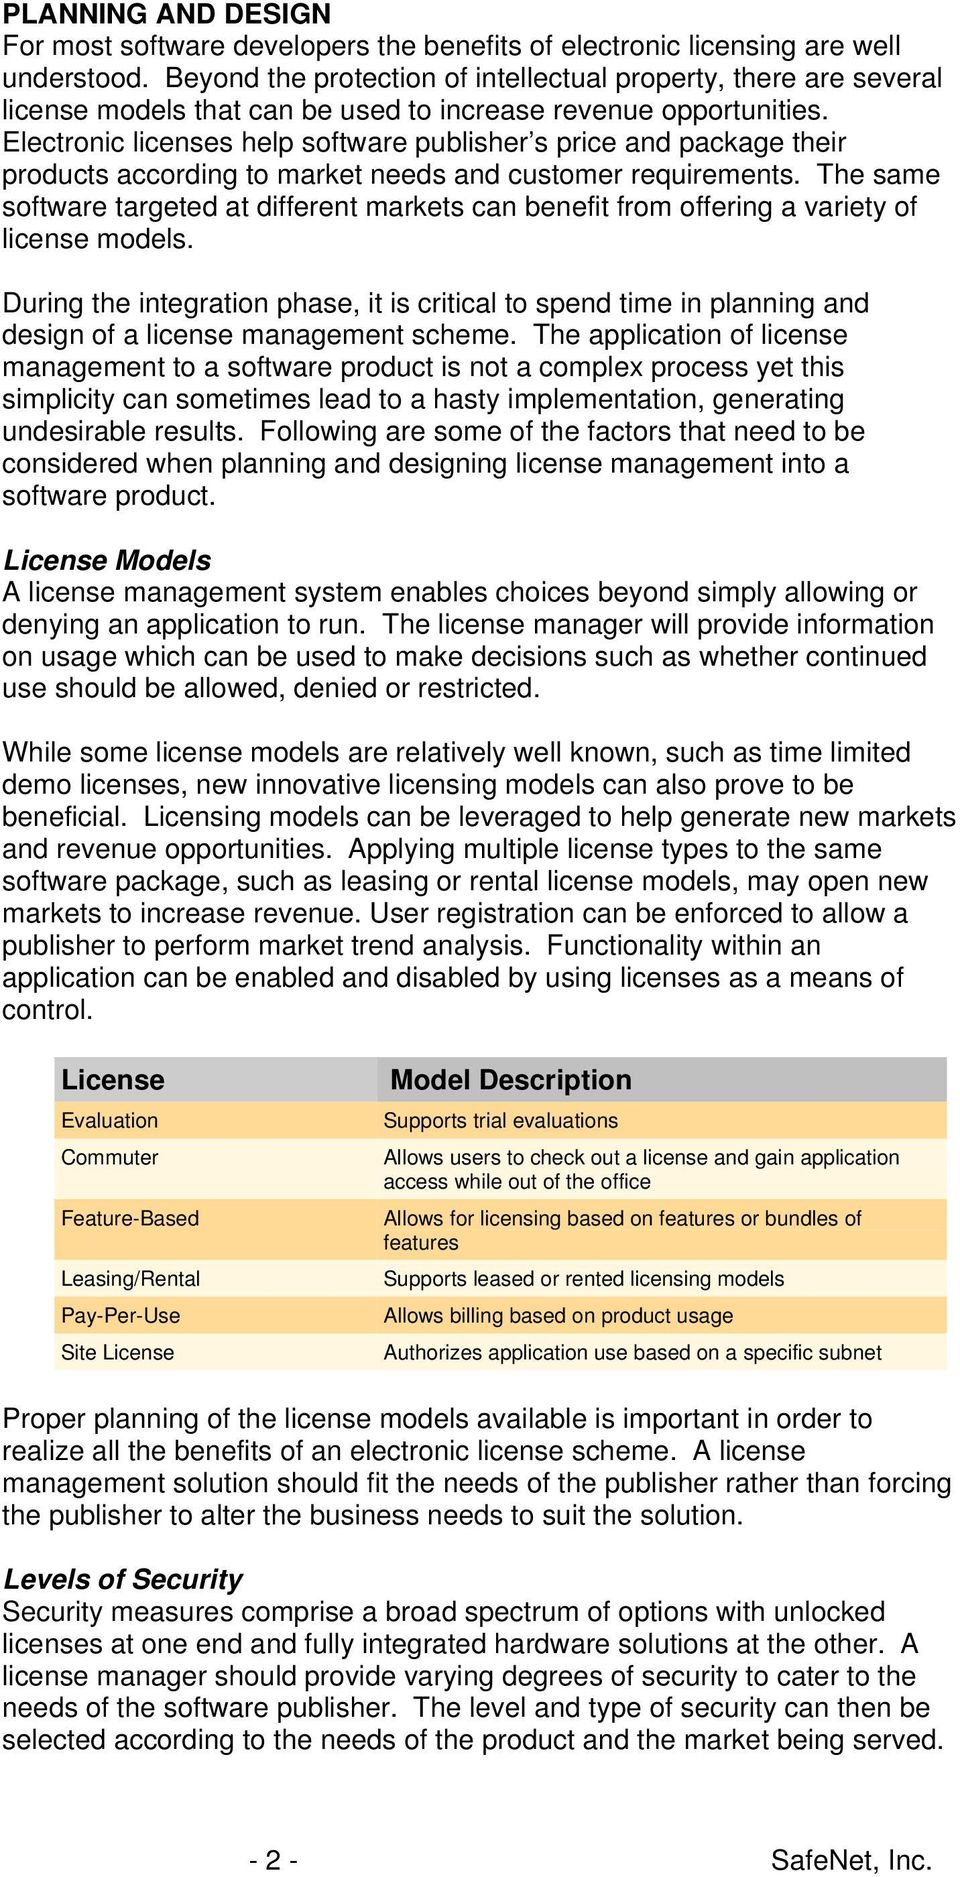 Electronic licenses help software publisher s price and package their products according to market needs and customer requirements.